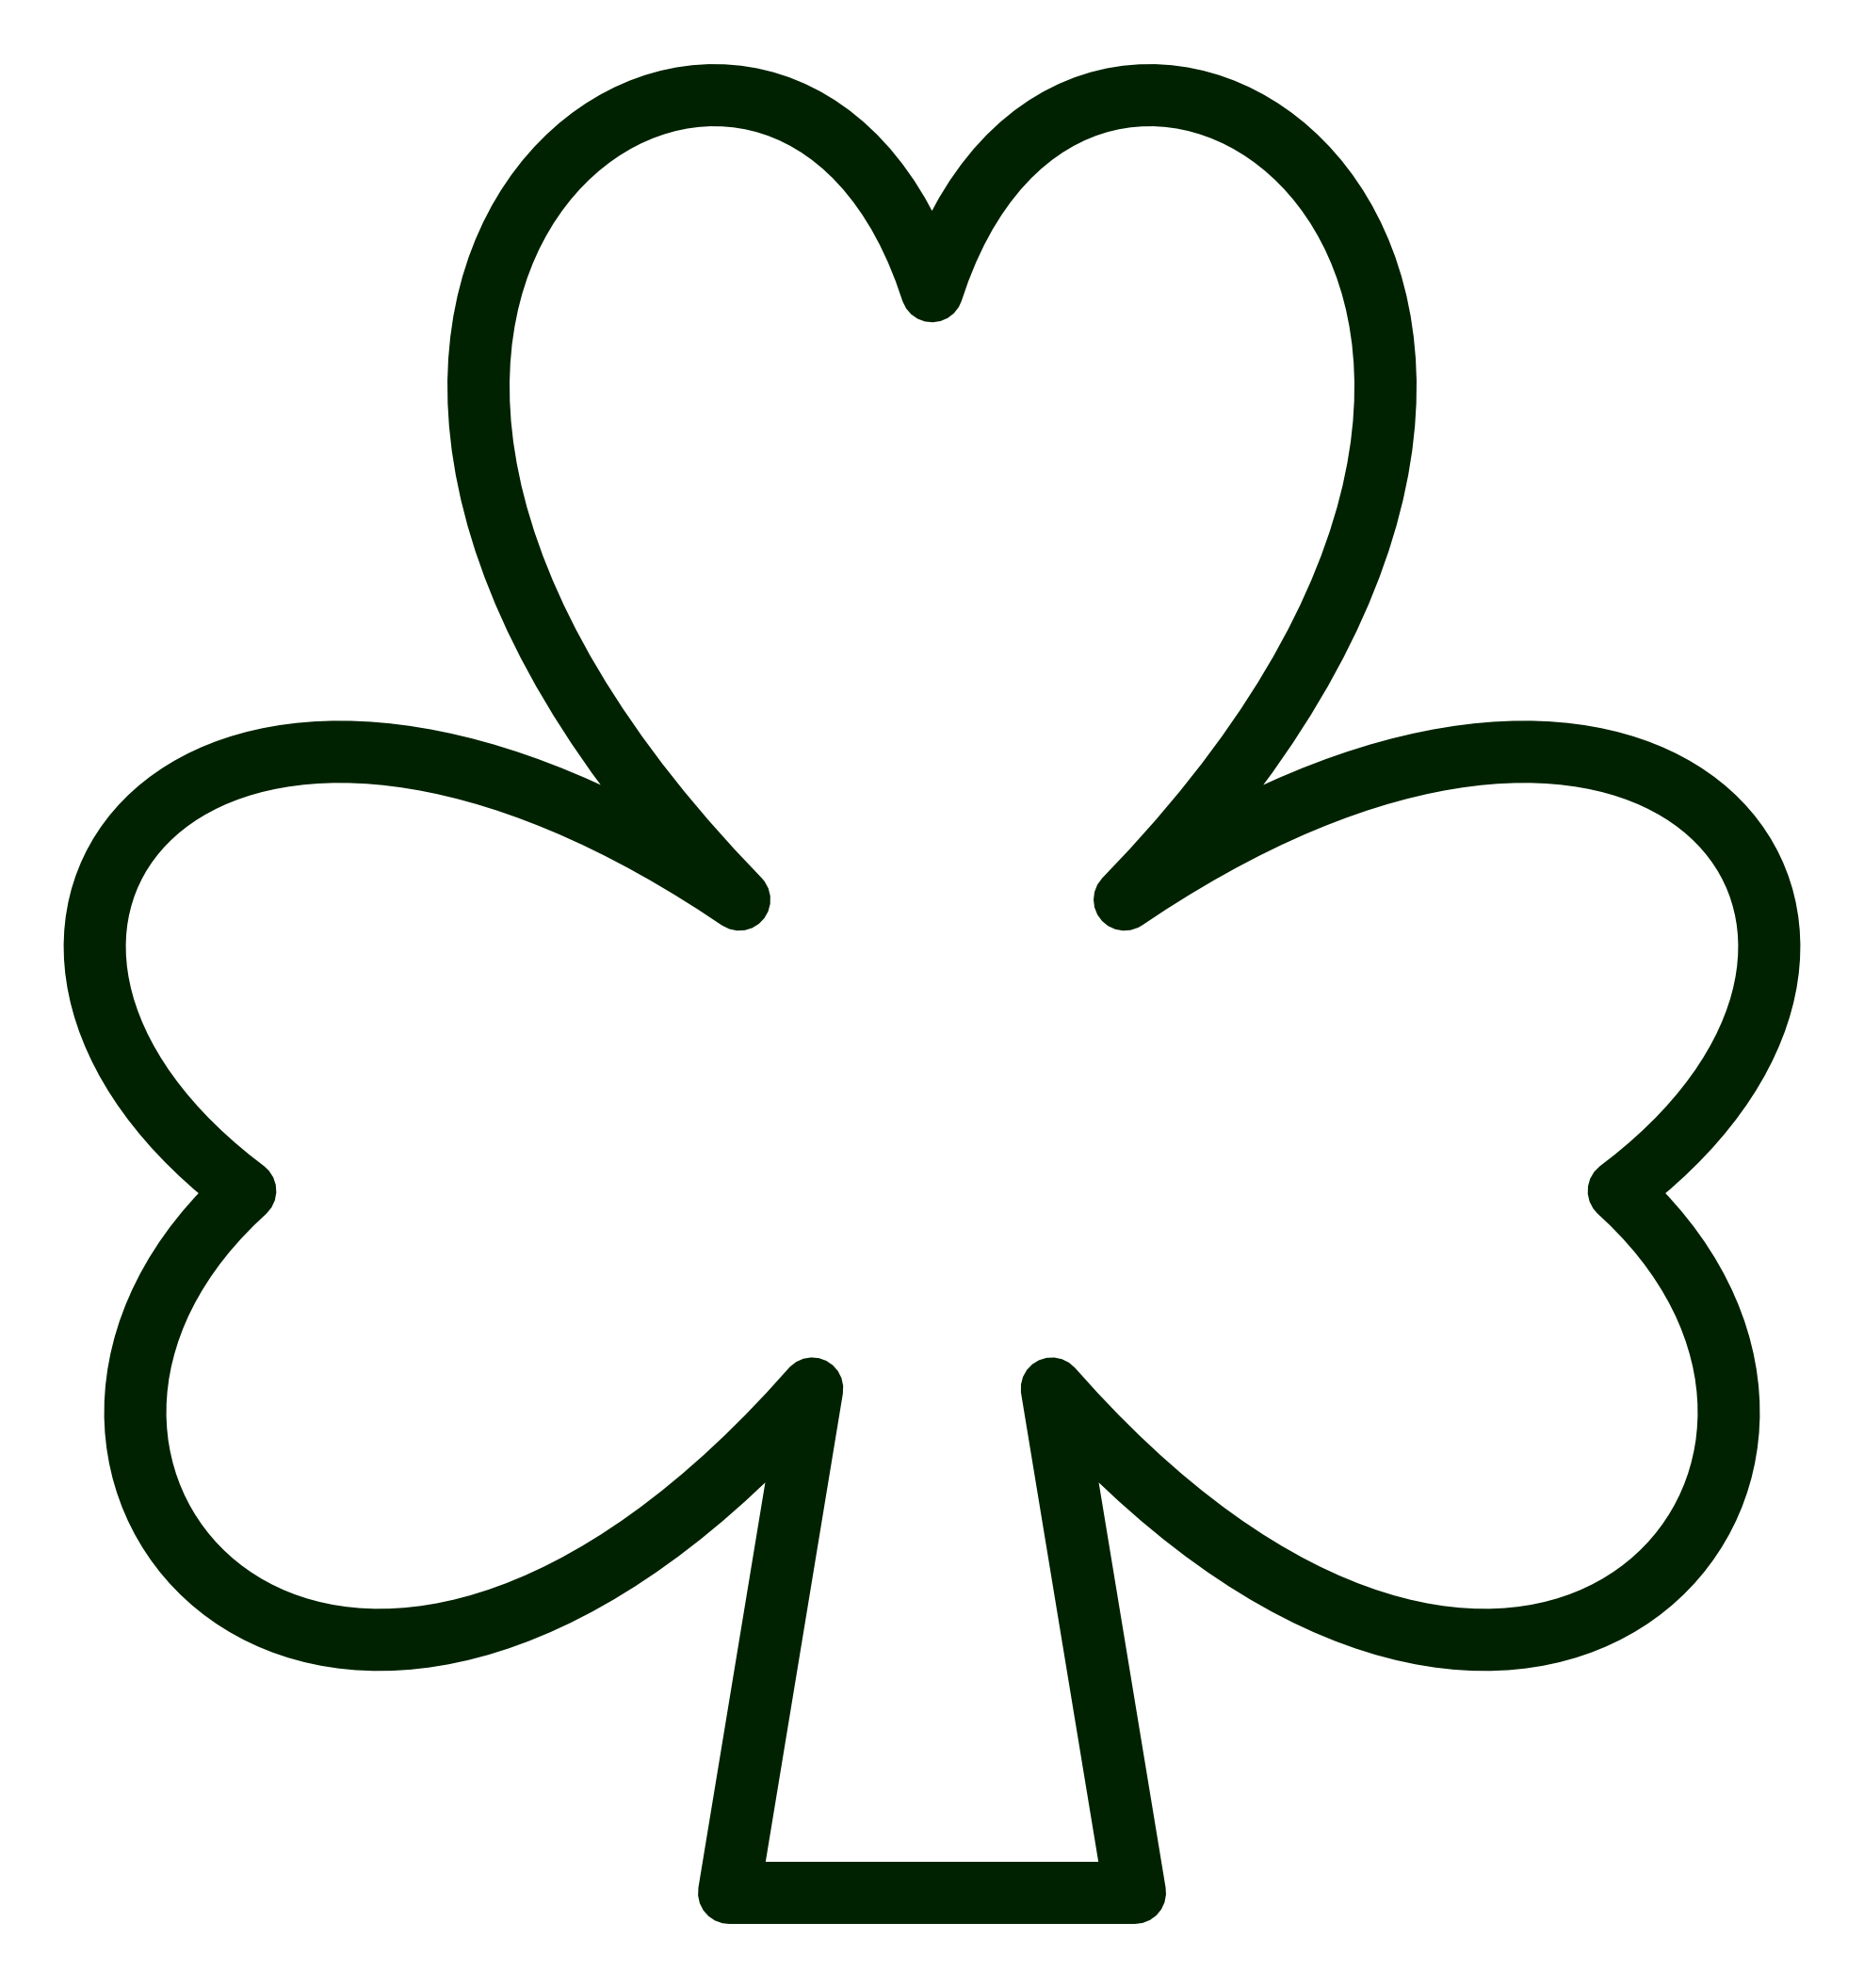 picture regarding Shamrock Outline Printable referred to as Shamrock Define Cost-free obtain easiest Shamrock Define upon